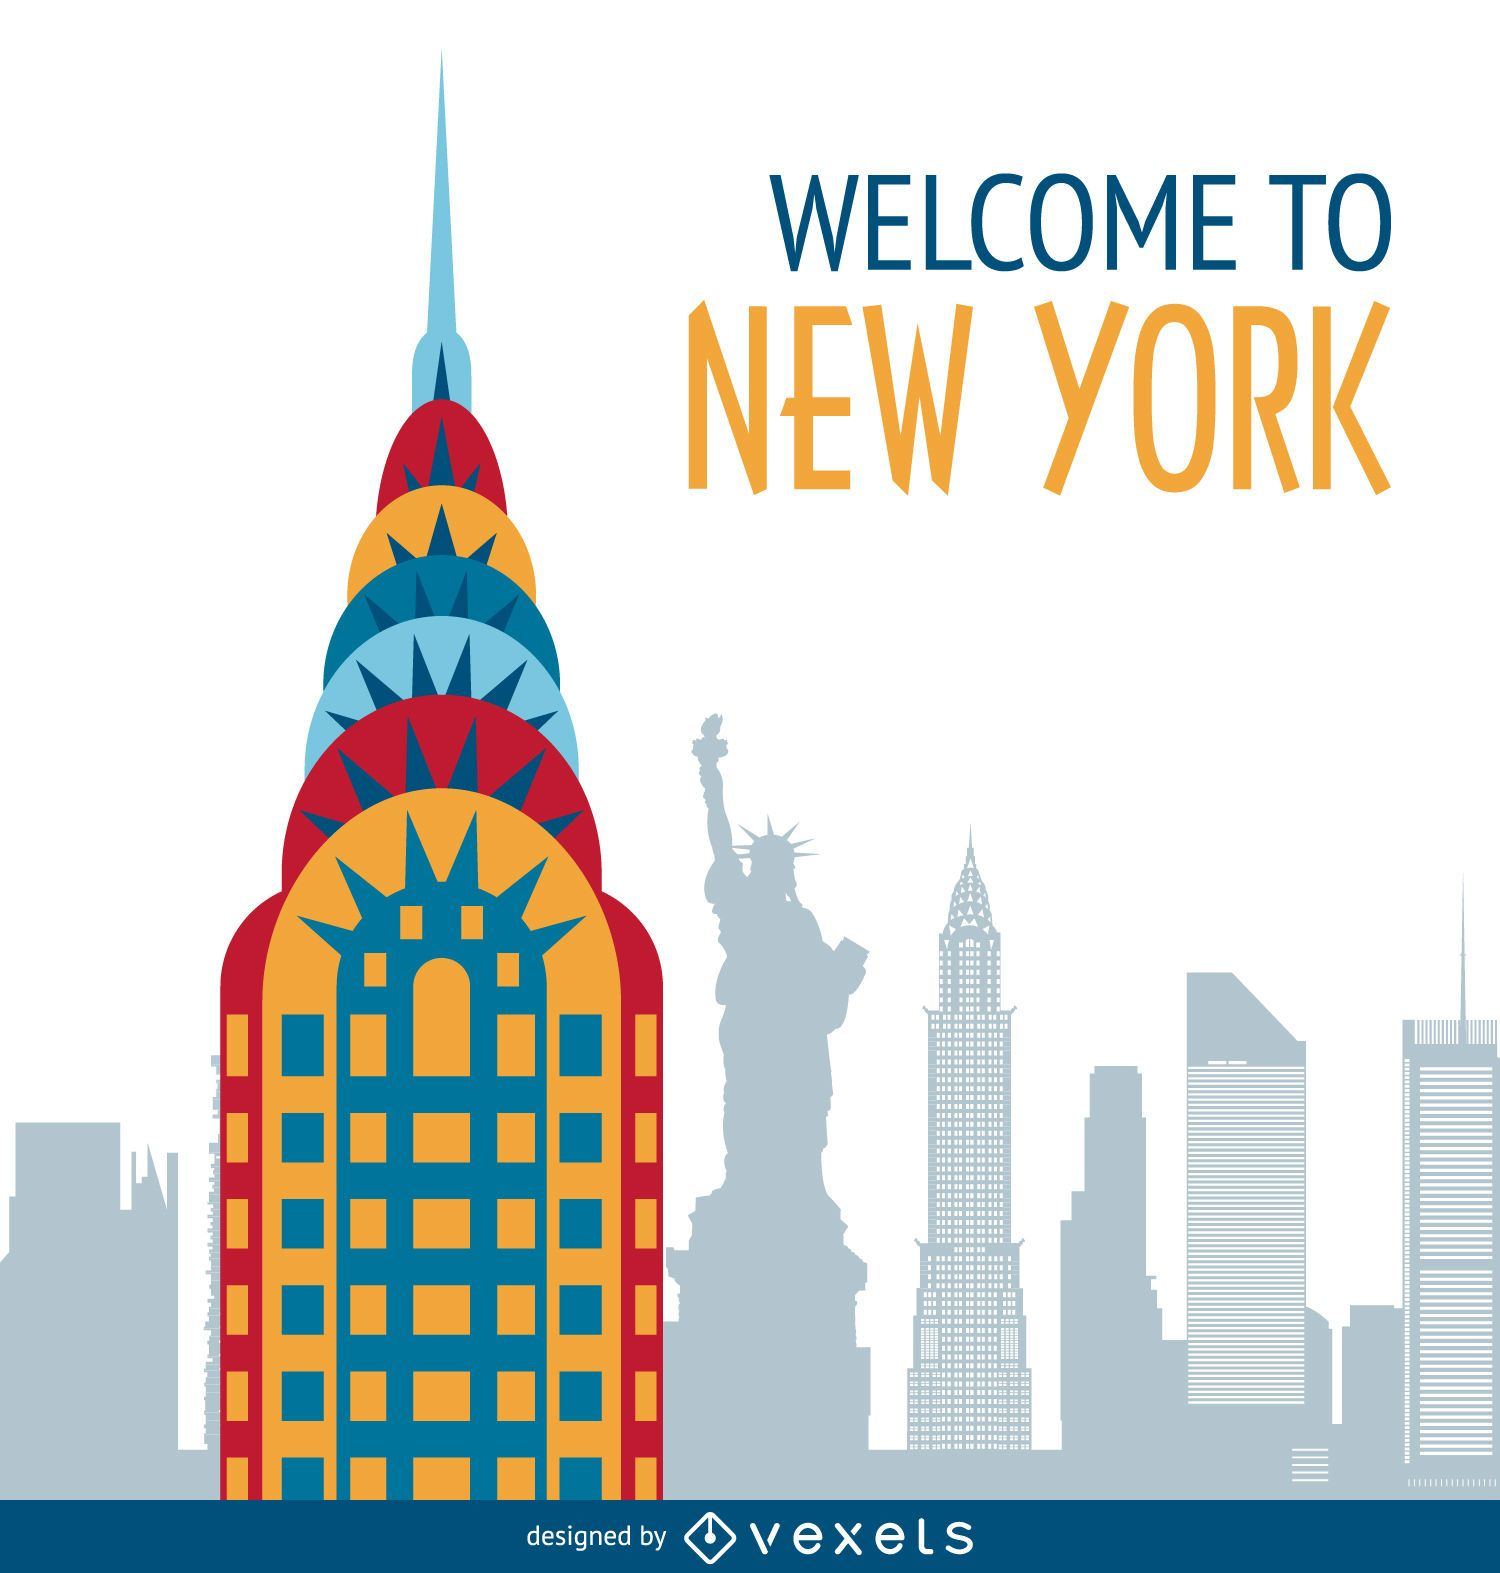 Populaire New York postcard illustration - Vector download ZY44